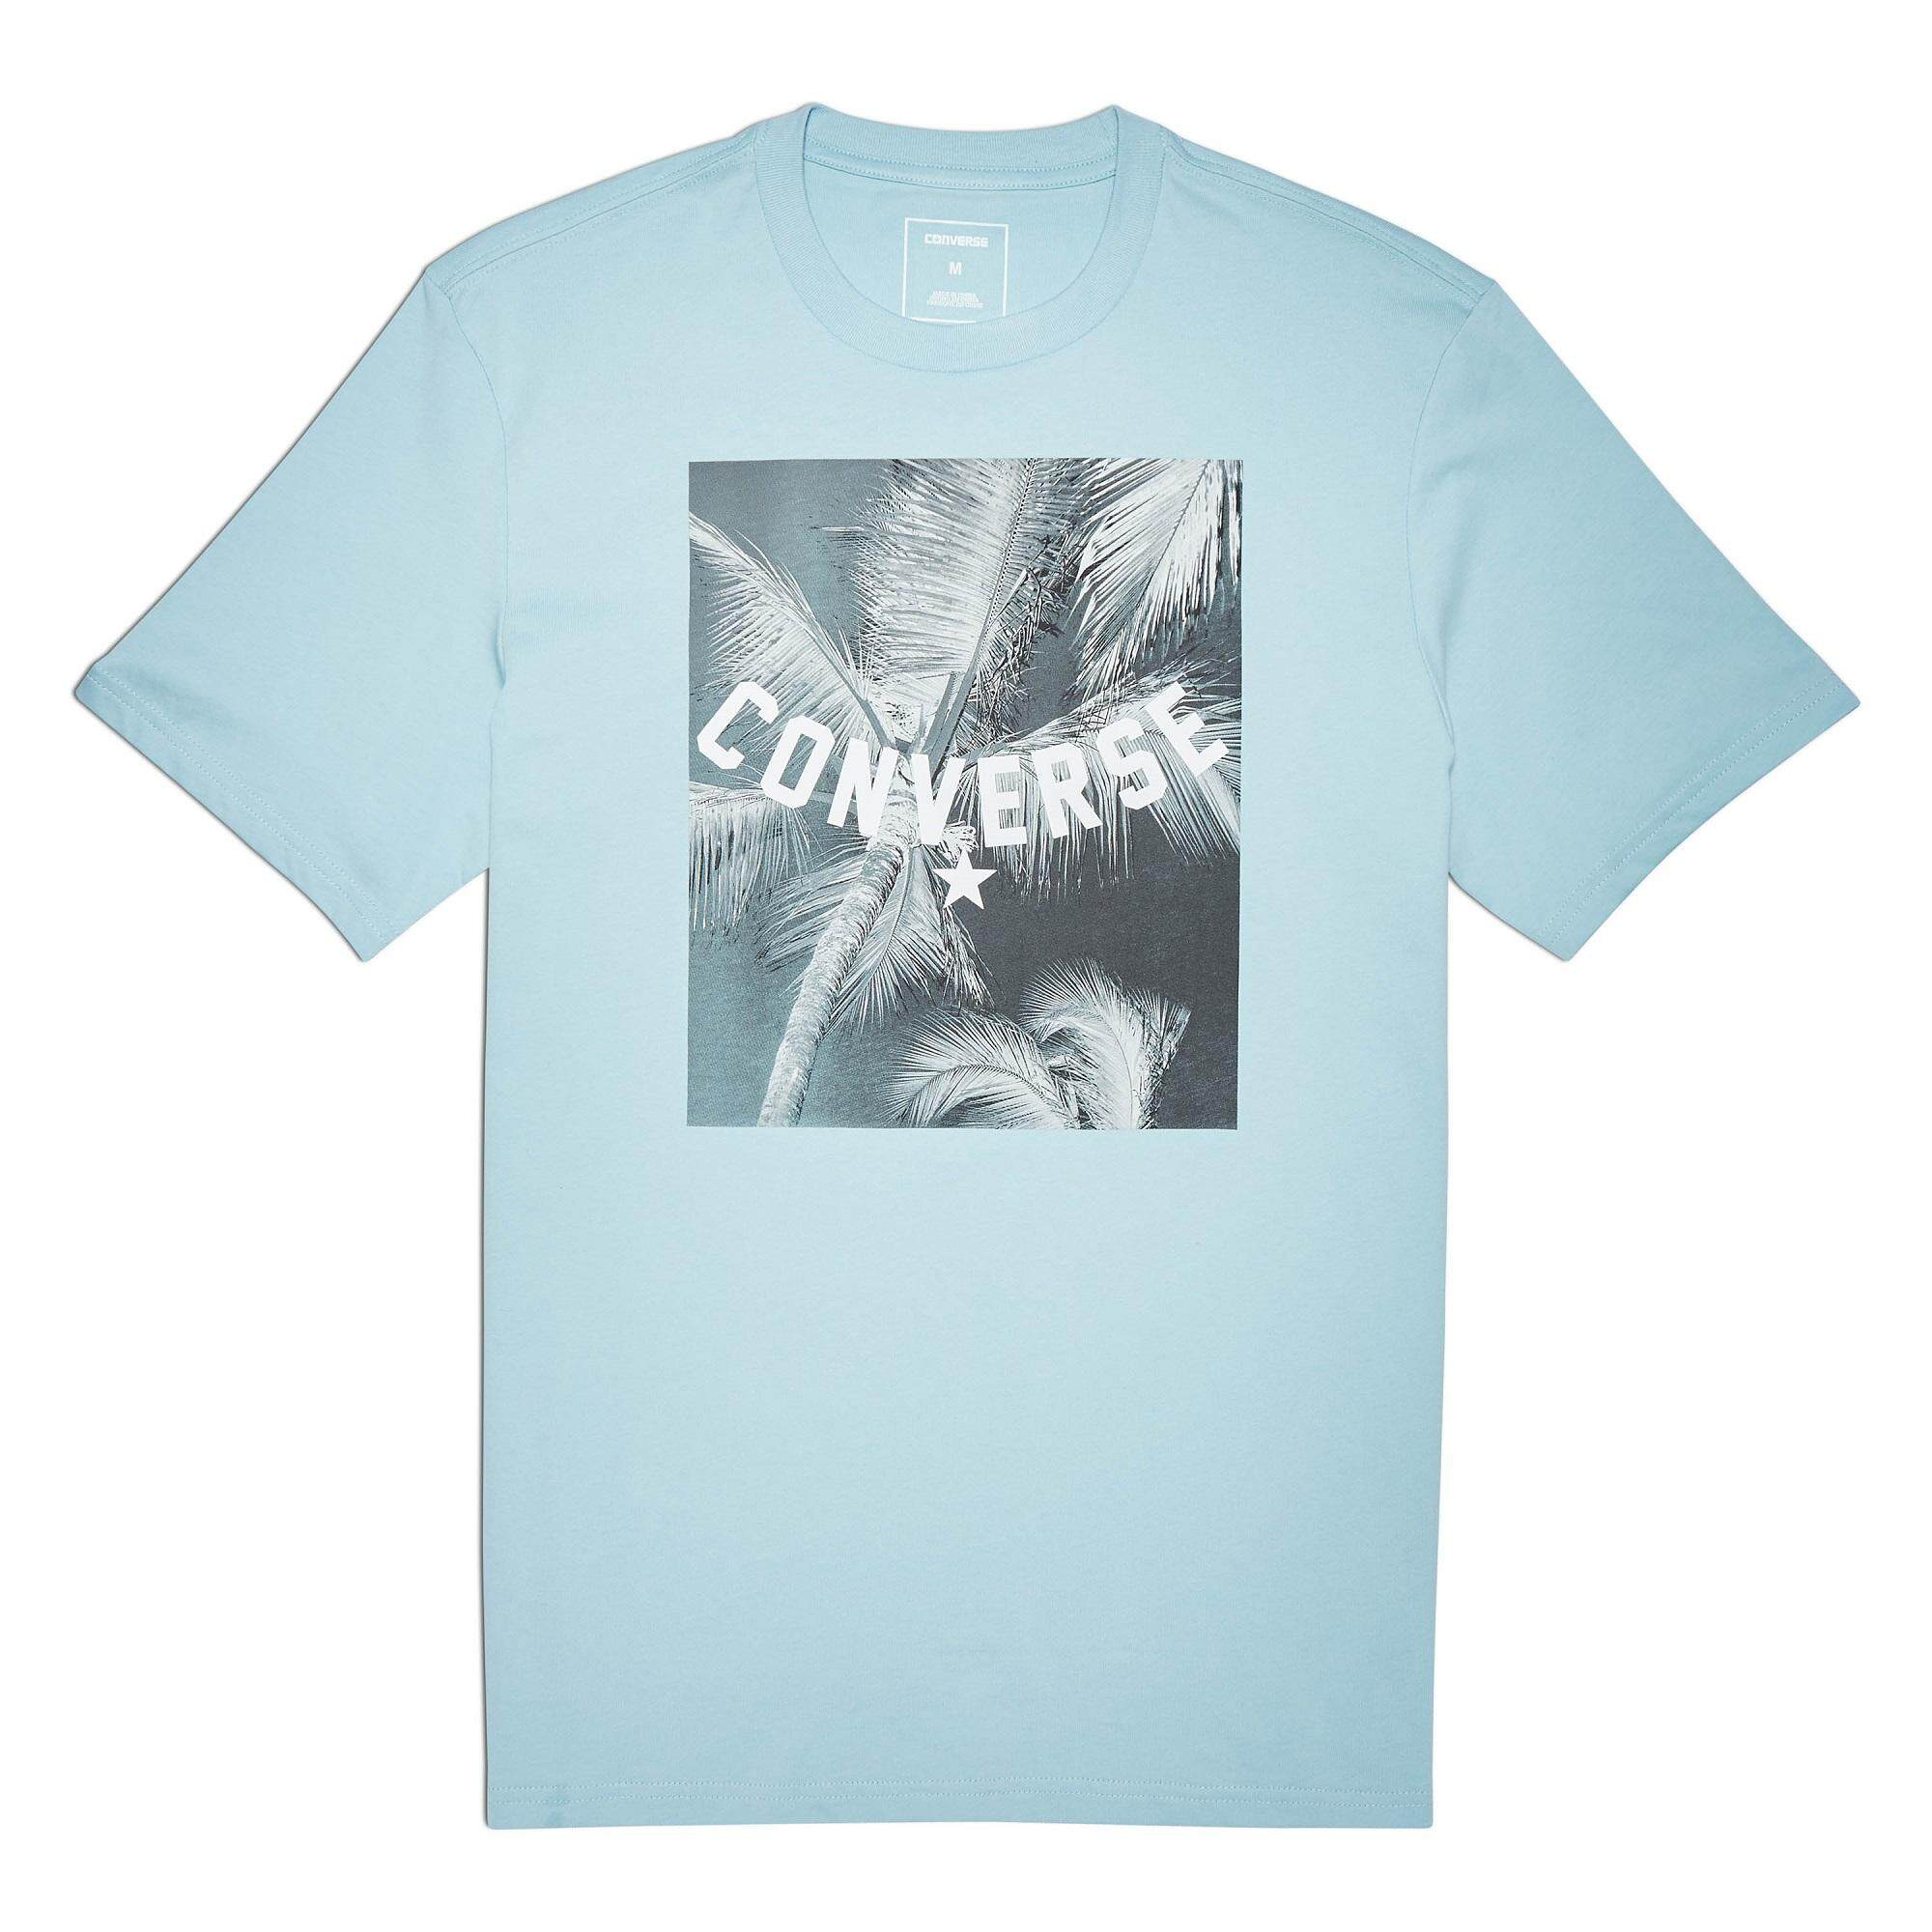 Converse Sneakers For The Best Price In Malaysia Tendencies Tshirt Mick Hitam M Palm Tree Photo Tee Ocean Bliss 10005906 A02